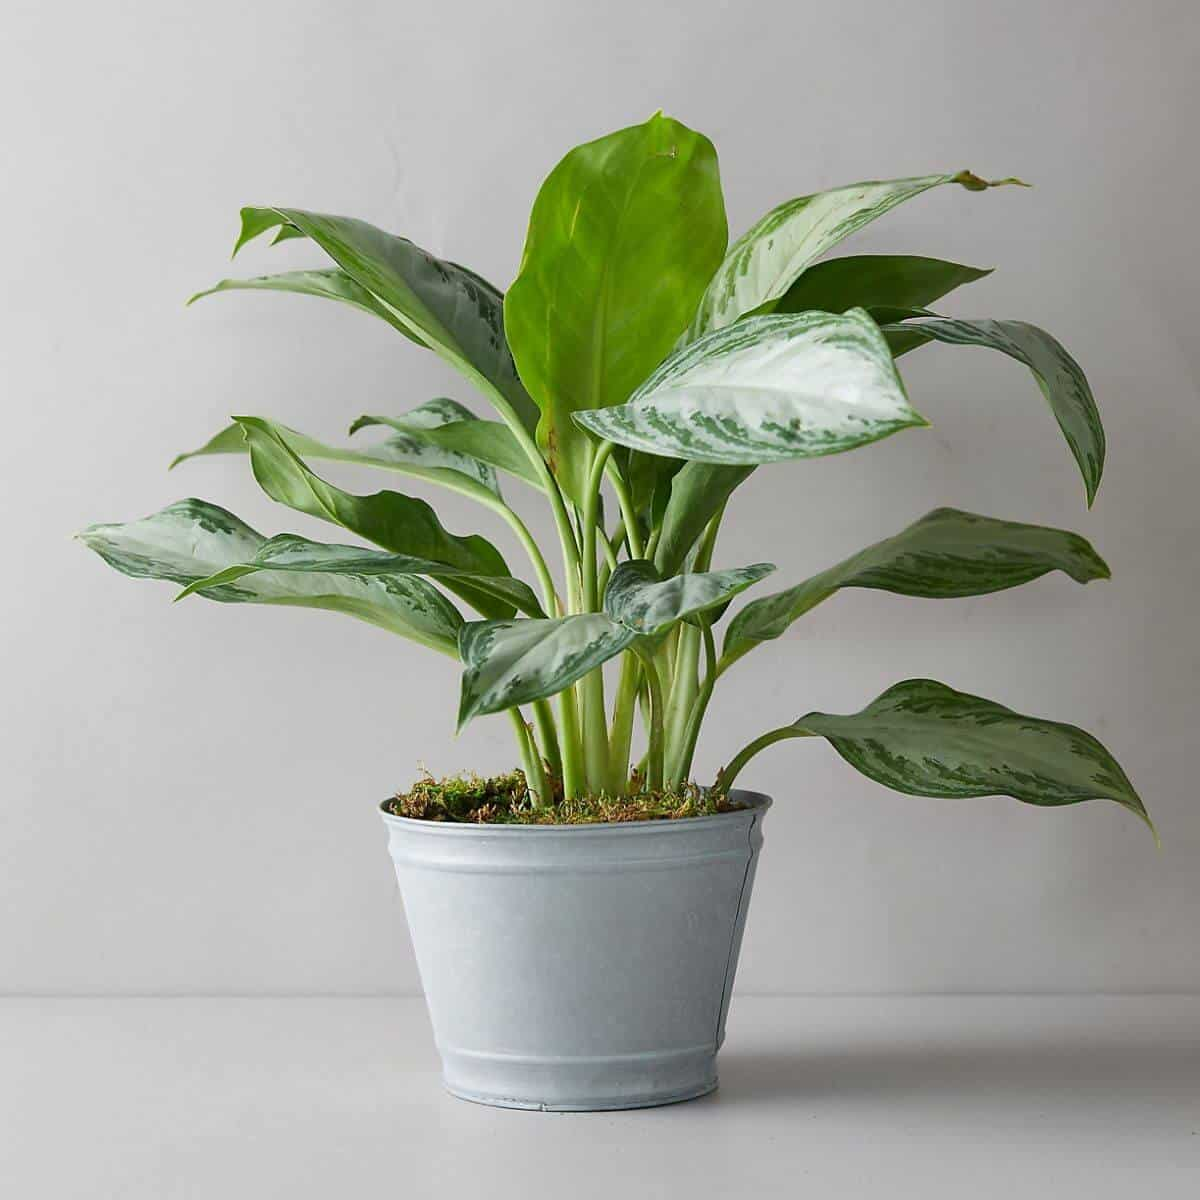 Chinese evergreen plant in a metal pot.